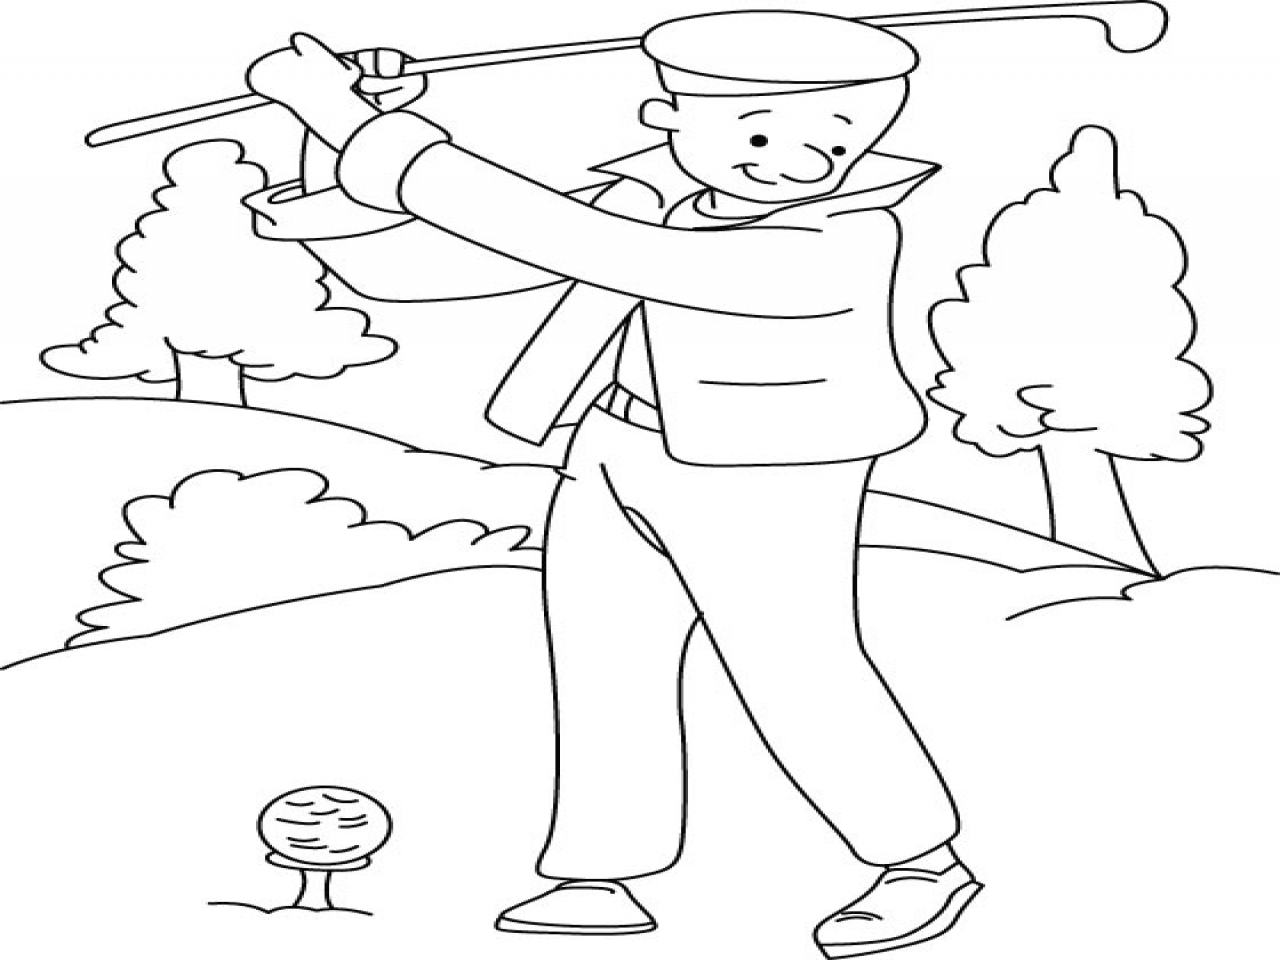 1280x960 Coloring Sheets Golf Bags Playing Page